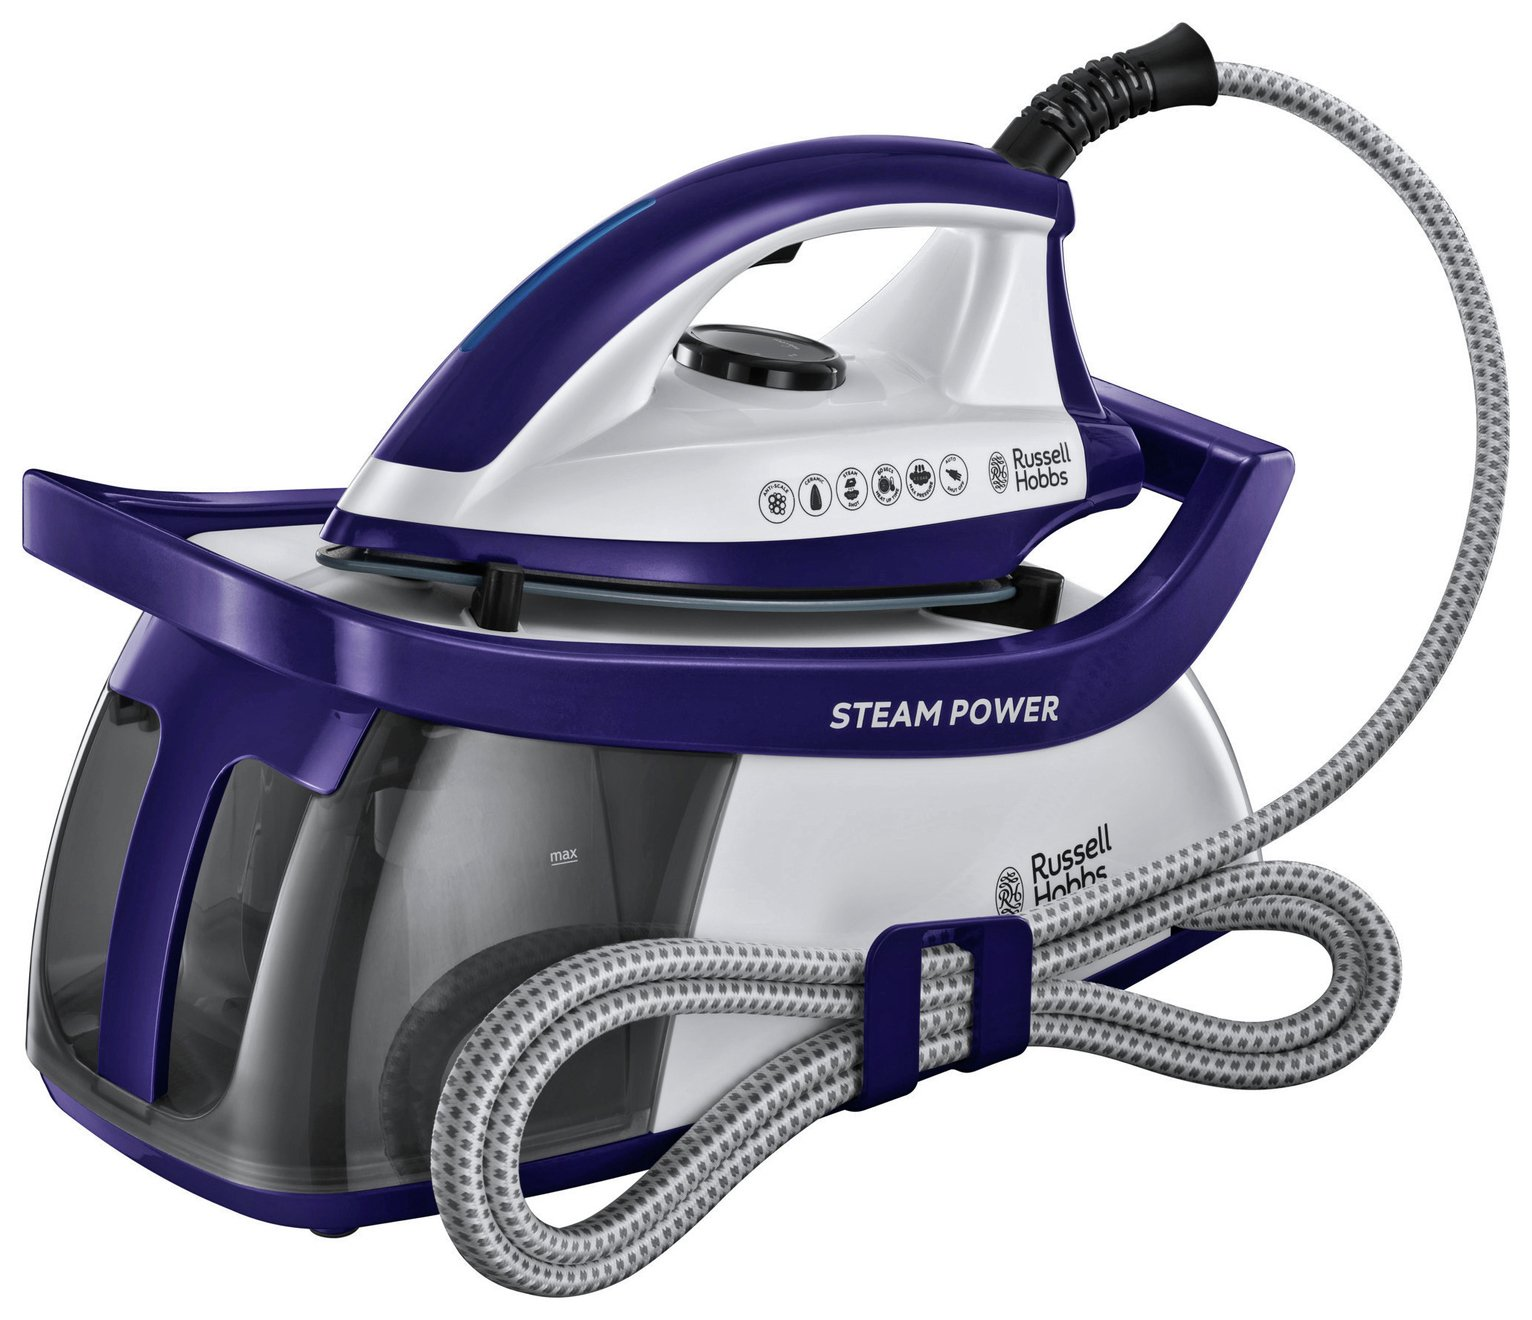 Russell Hobbs 24440 Steam Power Steam Generator Iron